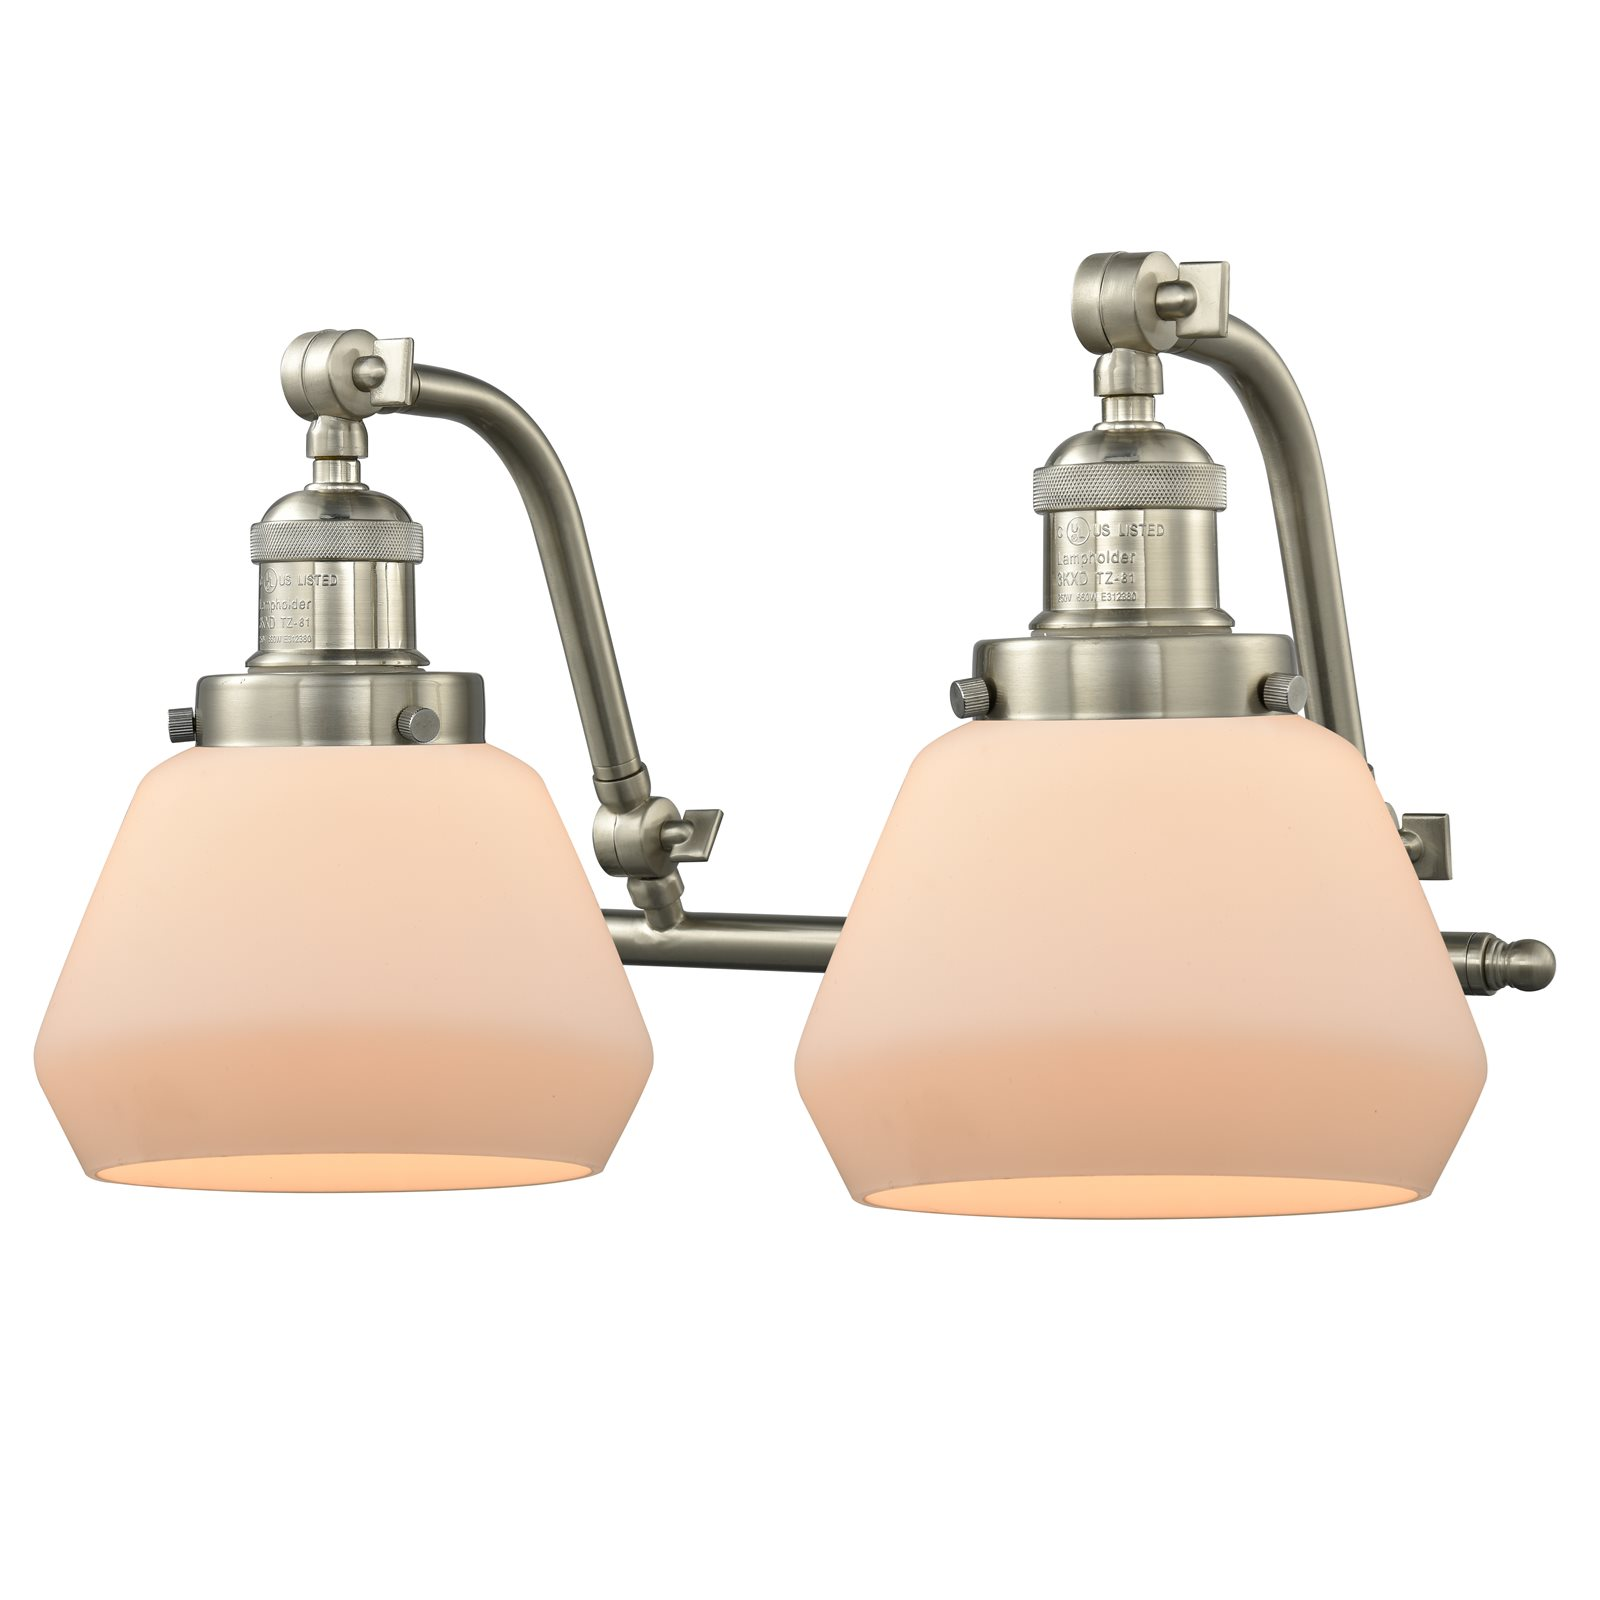 """Innovations 2-LT LED Fulton 18"""" Bathroom Fixture Brushed Satin Nickel 515-2W-SN-G171-LED by"""